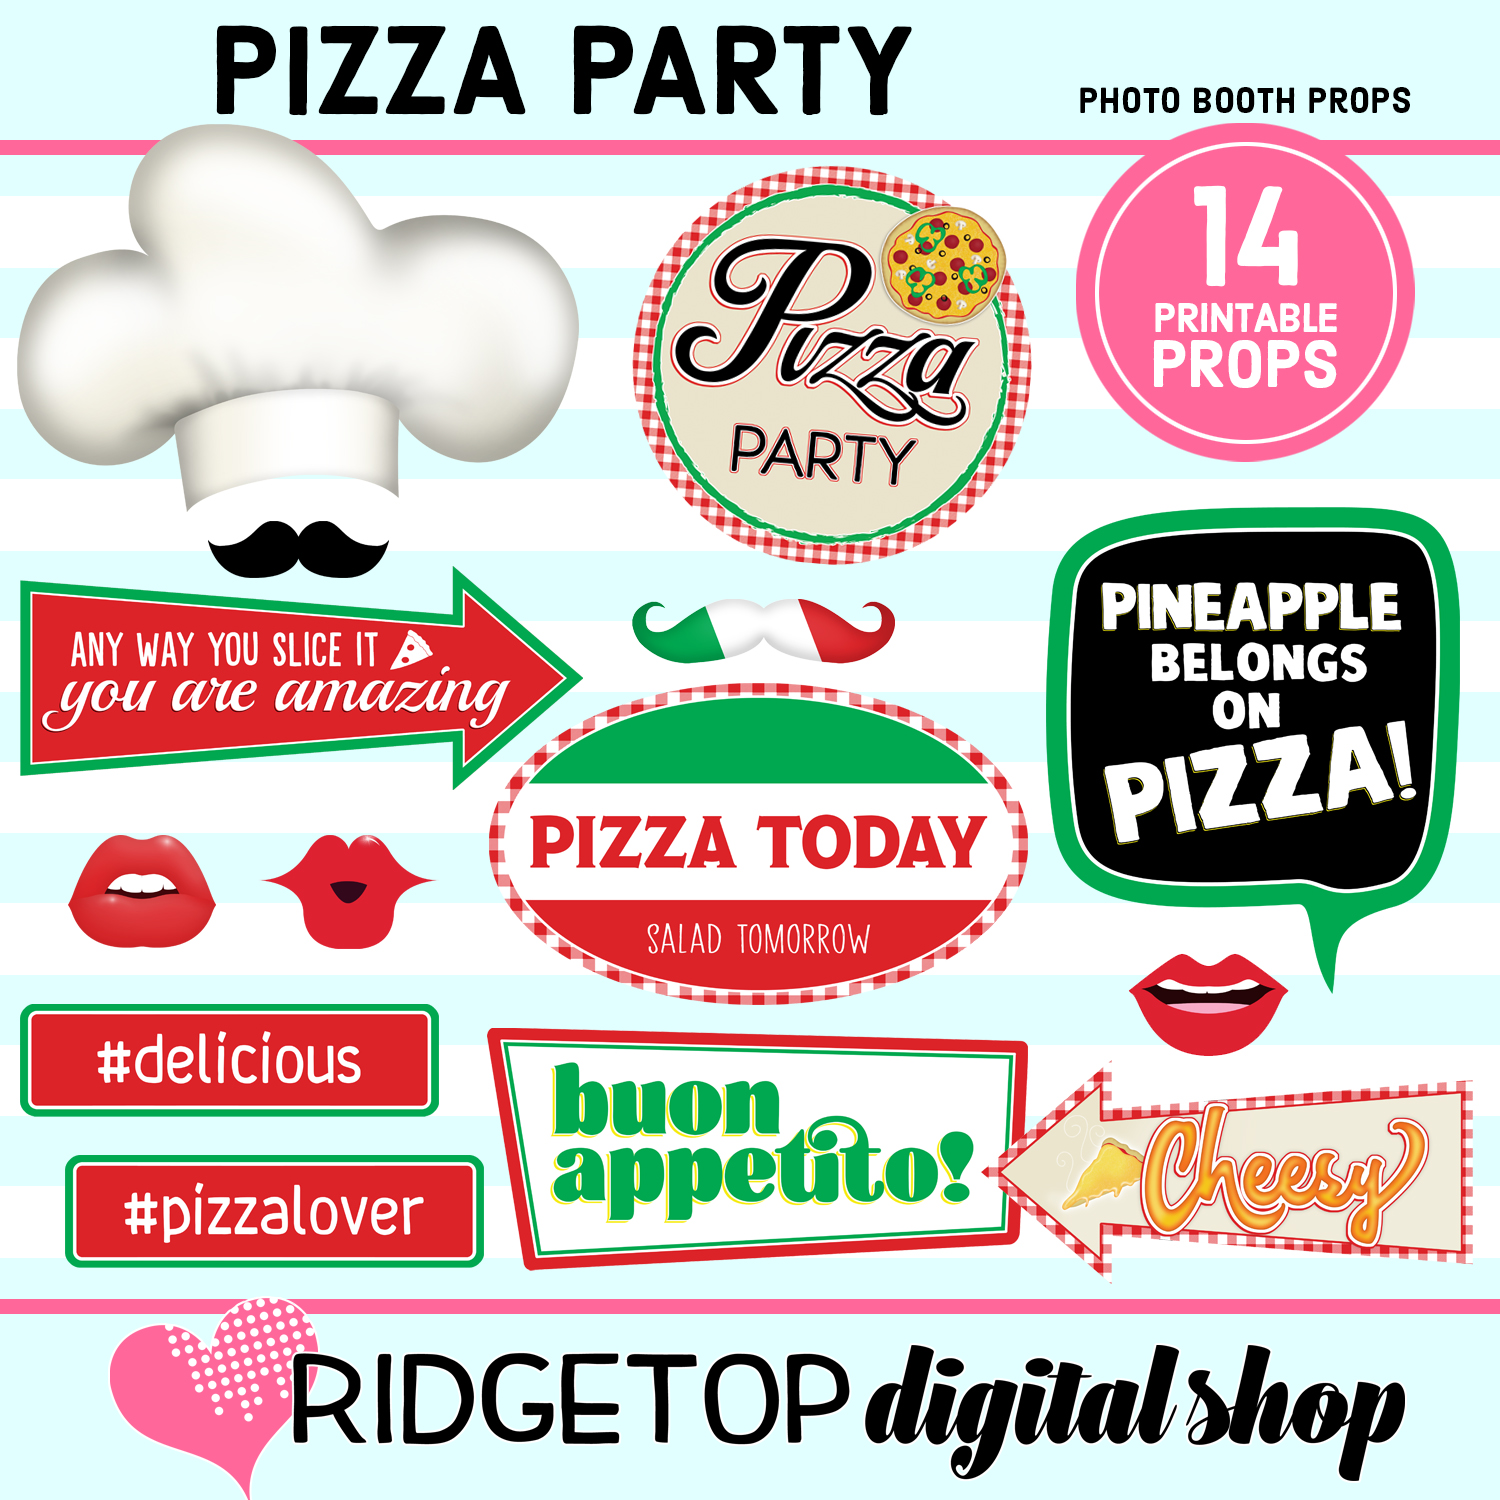 Pizza Party photo booth props | Ridgetop Digital Shop